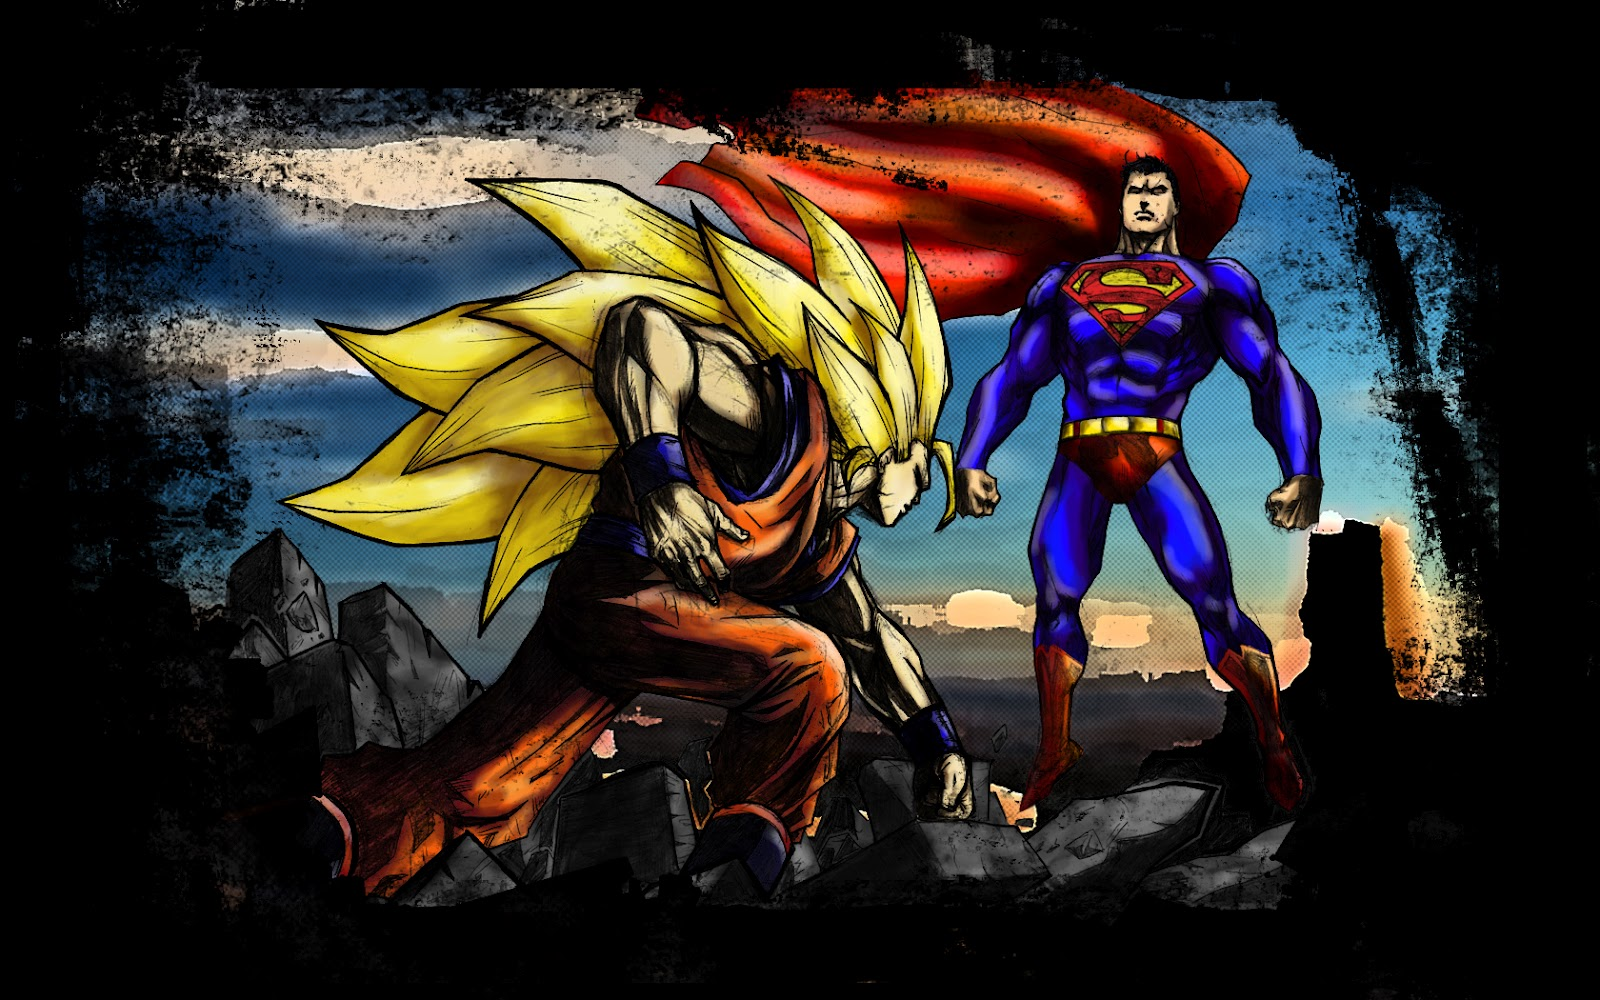 http://3.bp.blogspot.com/-XJz7fJwT3UY/T9jSdlEbssI/AAAAAAAAAOM/5aapyzXwnP4/s1600/5750_dragon_ball_z_hd_wallpapers+blogger.jpg